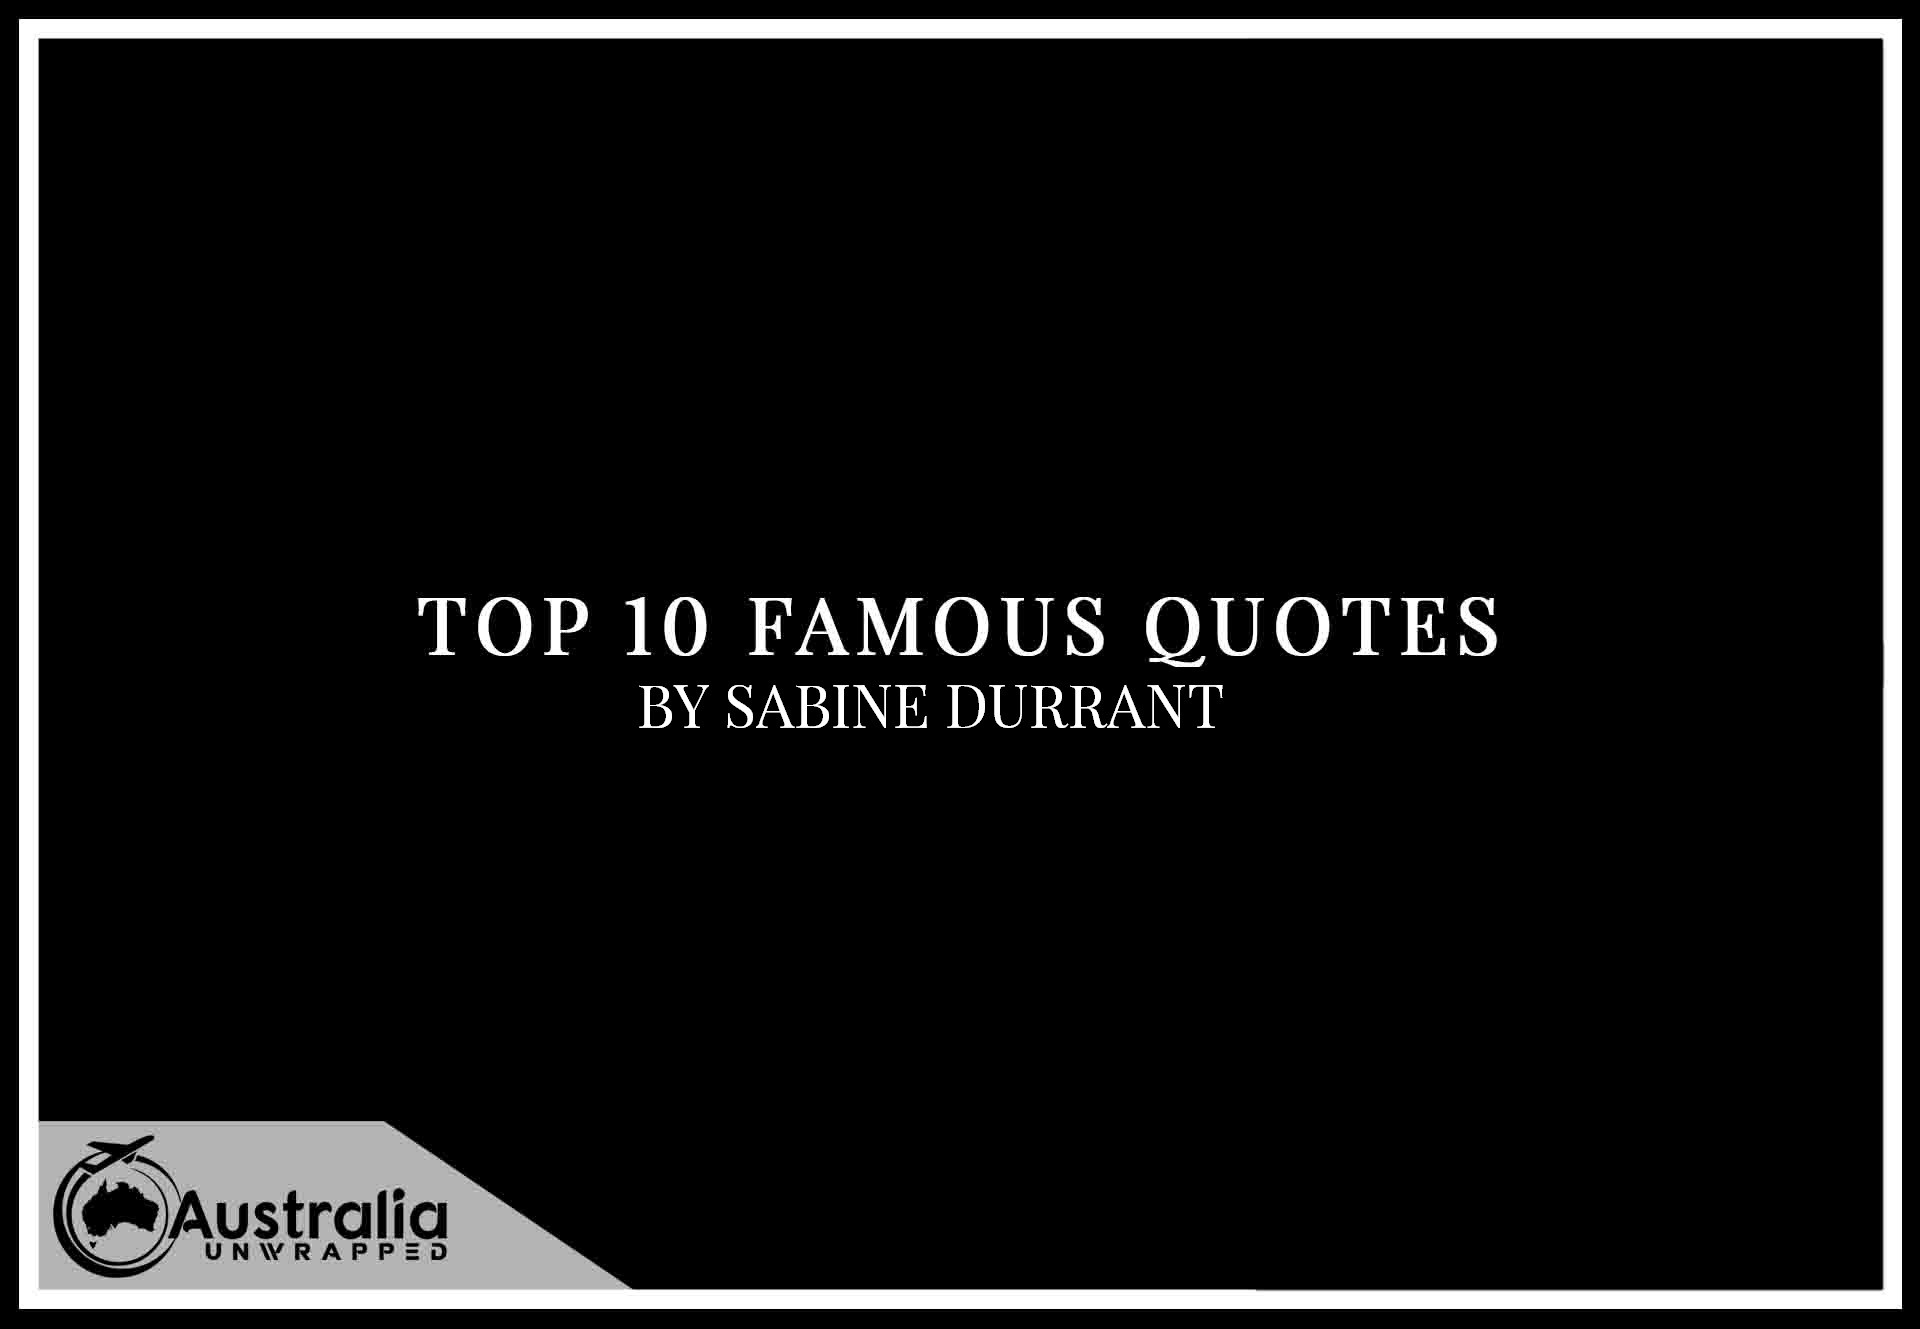 Top 10 Famous Quotes by Author Sabine Durrant